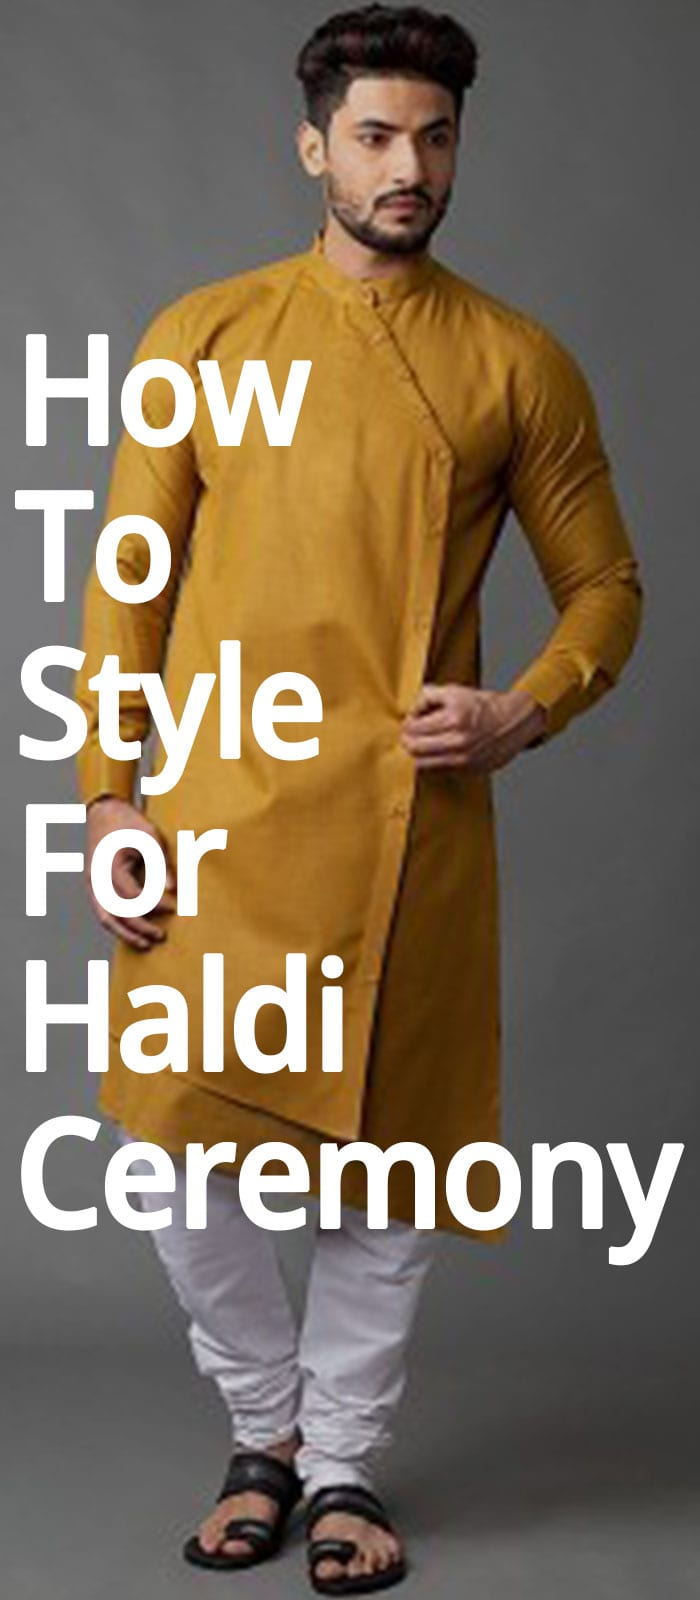 How To Style For Haldi Ceremony